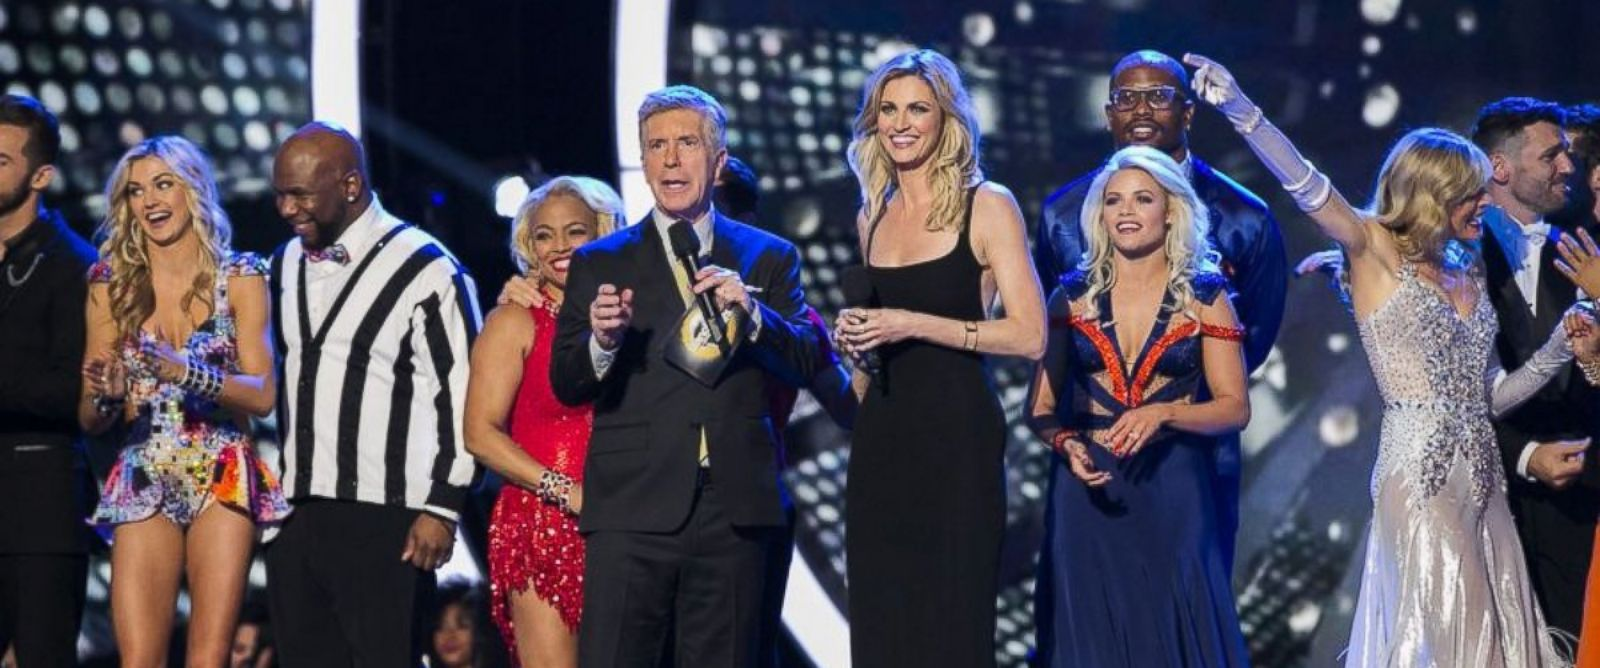 """PHOTO: """"Dancing with the Stars"""" is back with an all-new celebrity cast ready to hit the ballroom floor. The competition began with the two-hour season premiere, March 21, 2016."""